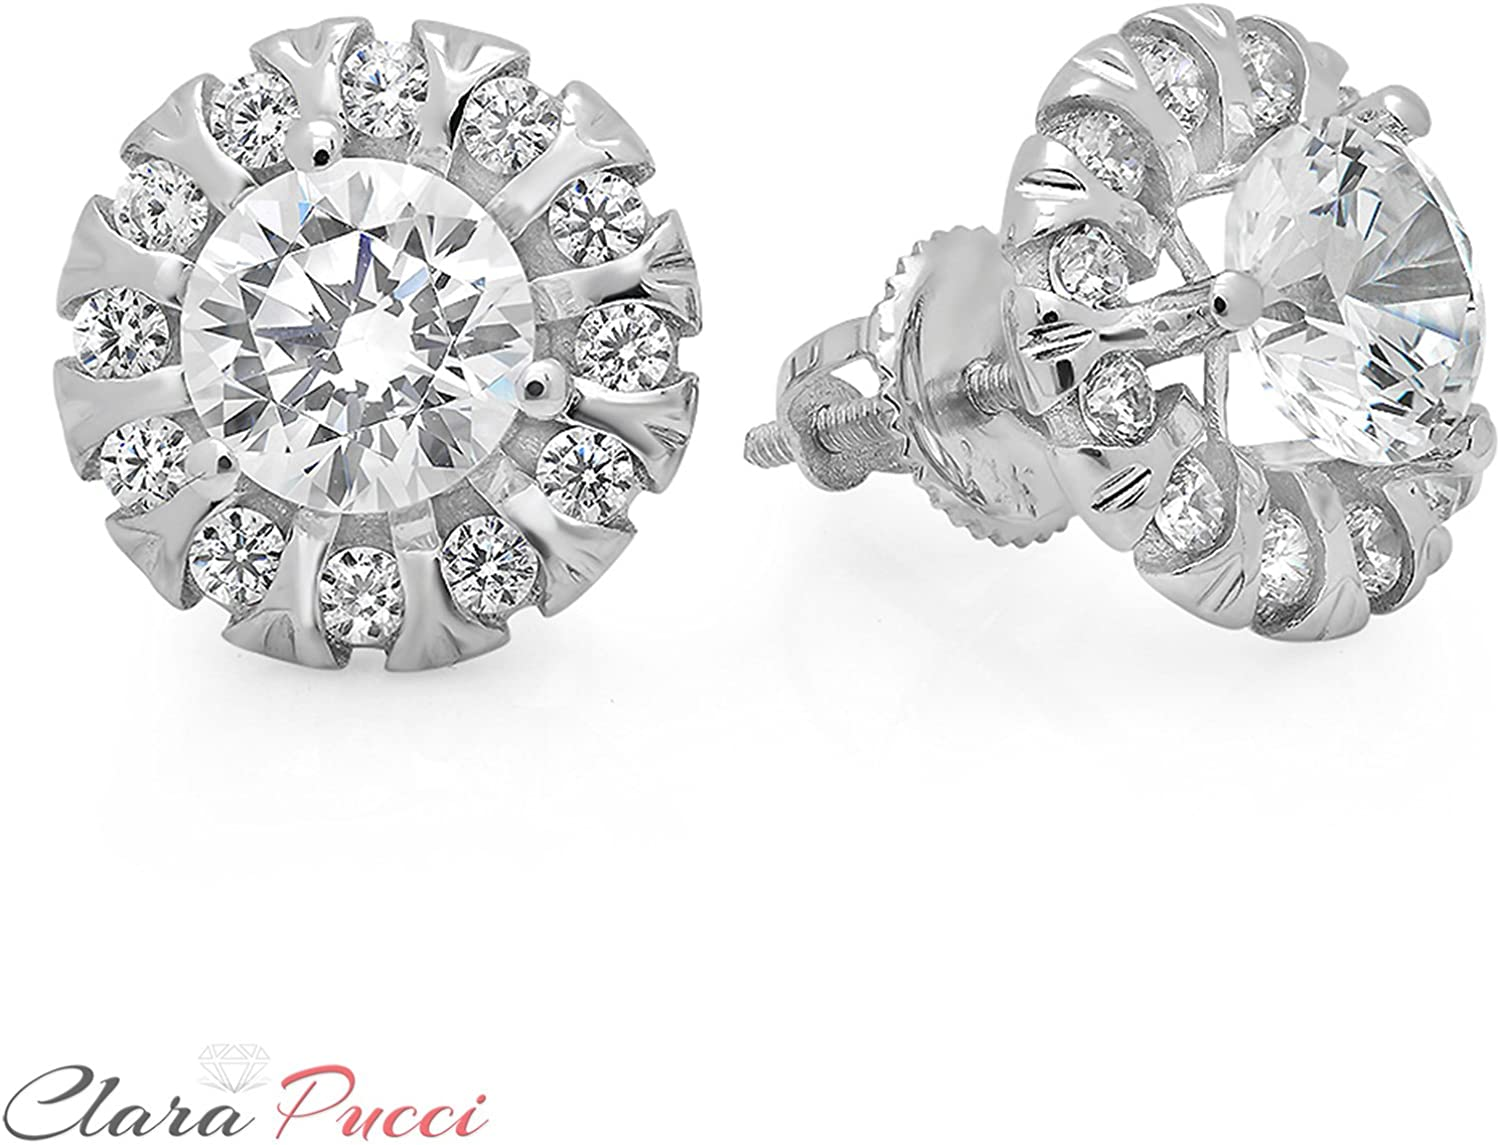 Clara Pucci 0.90 CT Round Cut Solitaire Martini Style Stud Earrings in 14k Yellow Gold Screw Back